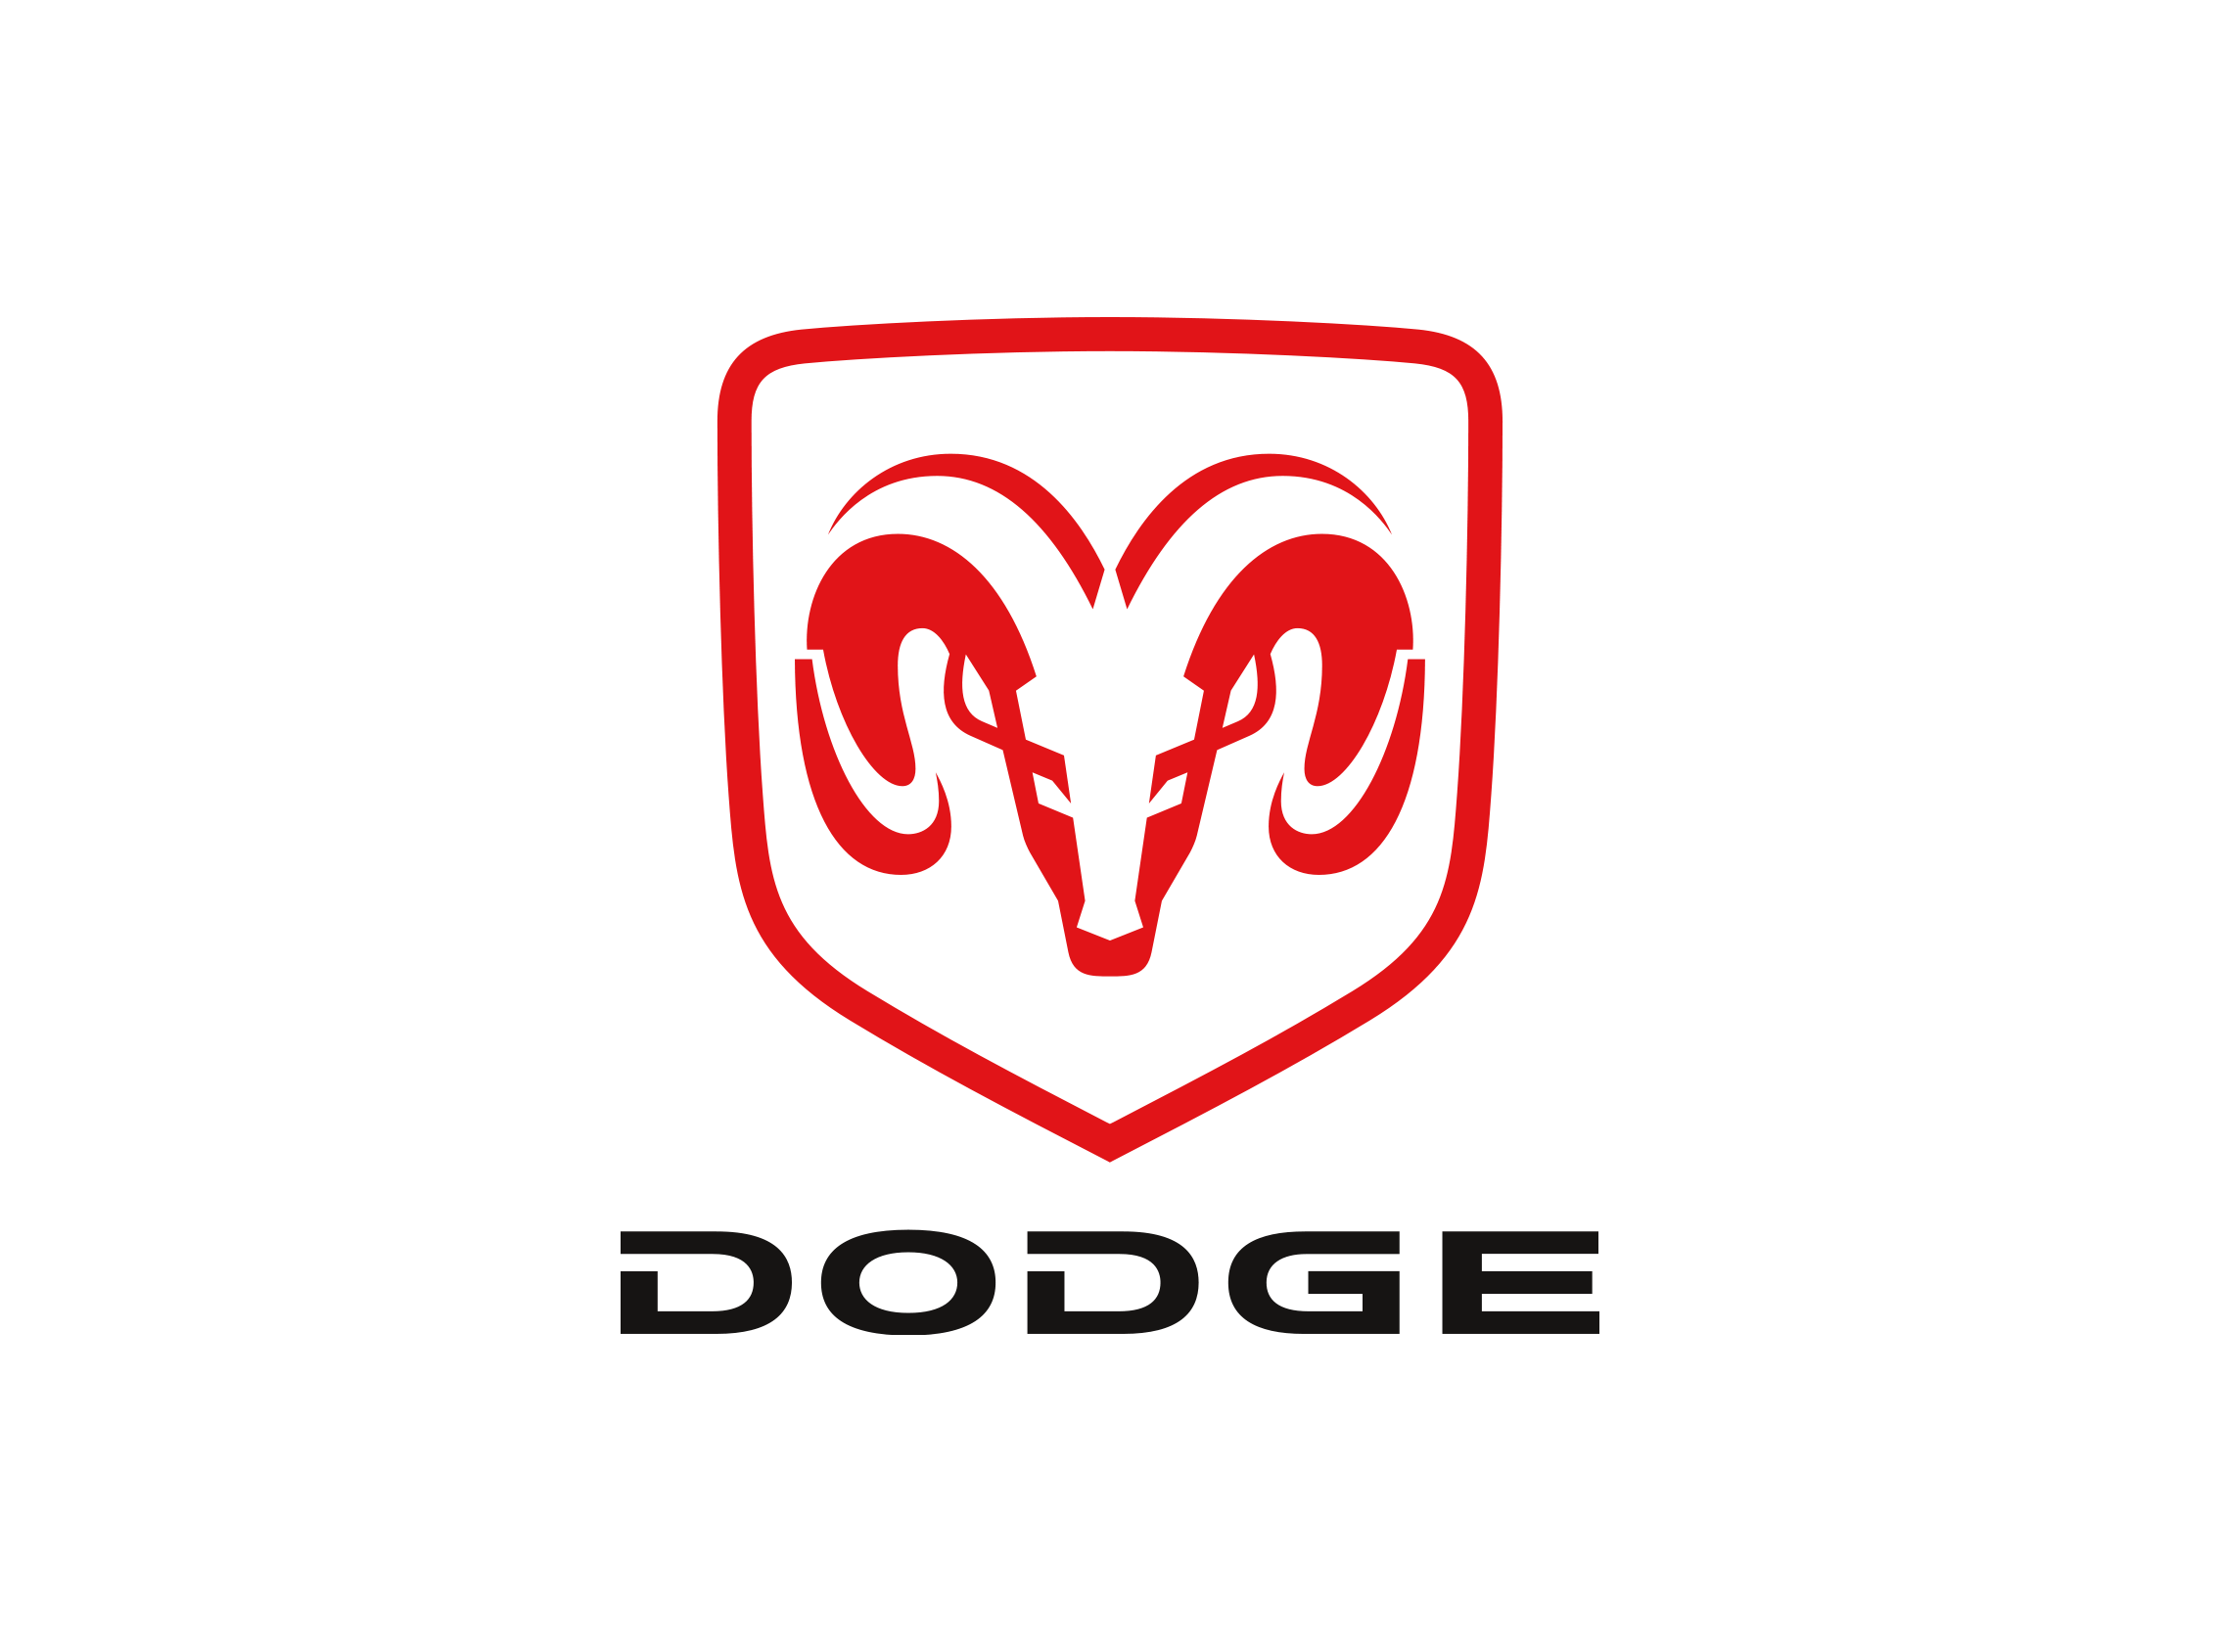 DODGE MOTOR IMPORT BRANDS VOITURE IMPORT USA MIAMI IMPORT VOITURE EUROP IMPORT USA MOTOR IMPORT7 - MUSTANG importation voiture des Etats Unis MUSTANG votre mandataire automobile usa